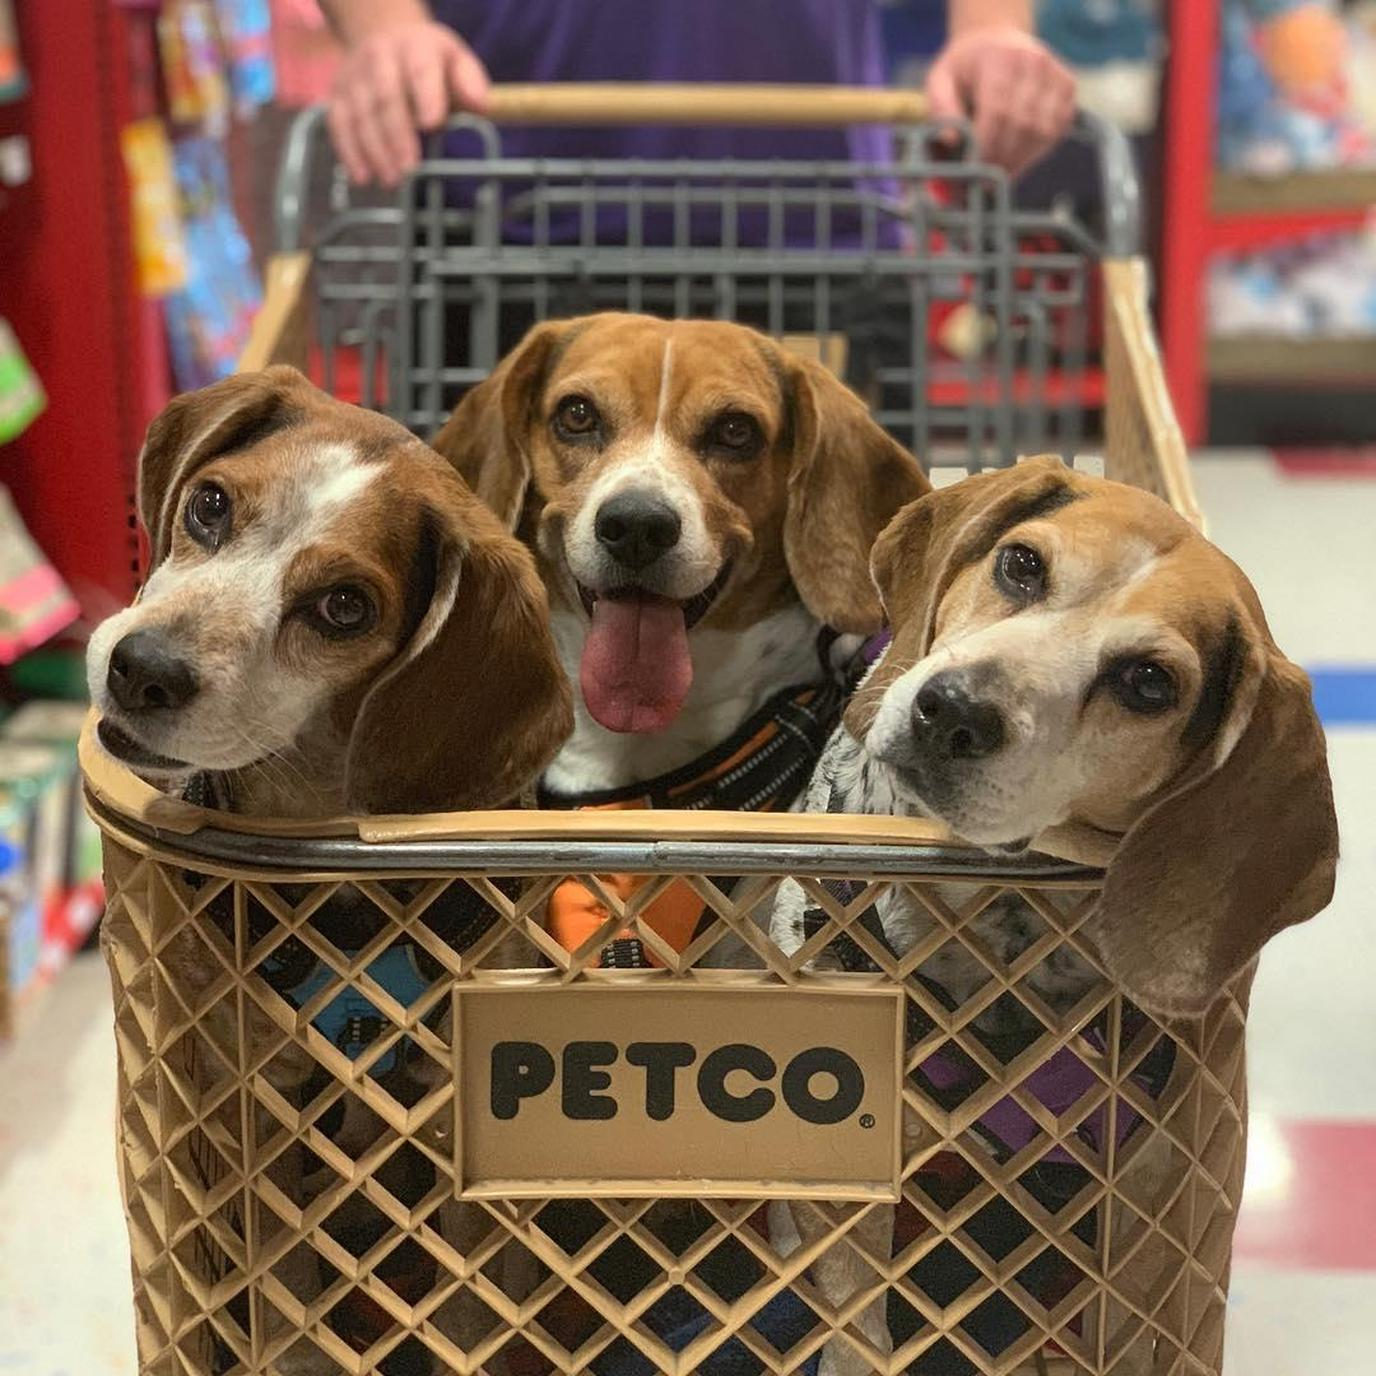 Three Beagles Sit in a Cart While Shopping for Black Friday Pet Deals.